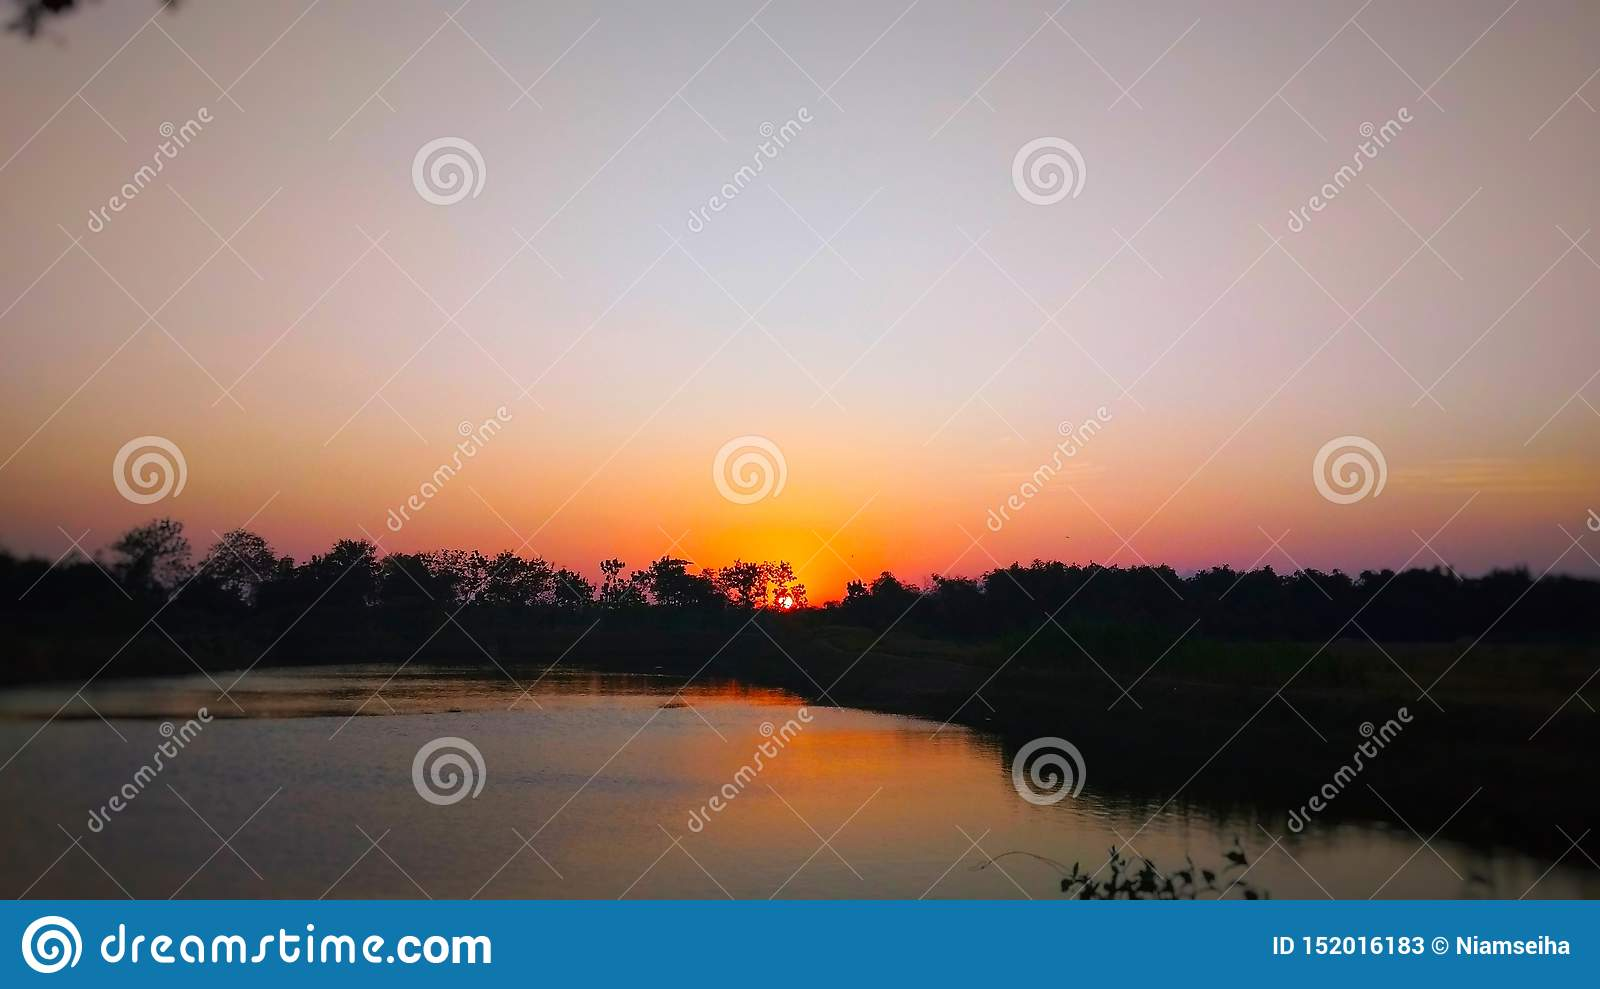 Sunset view on the edge of the reservoir